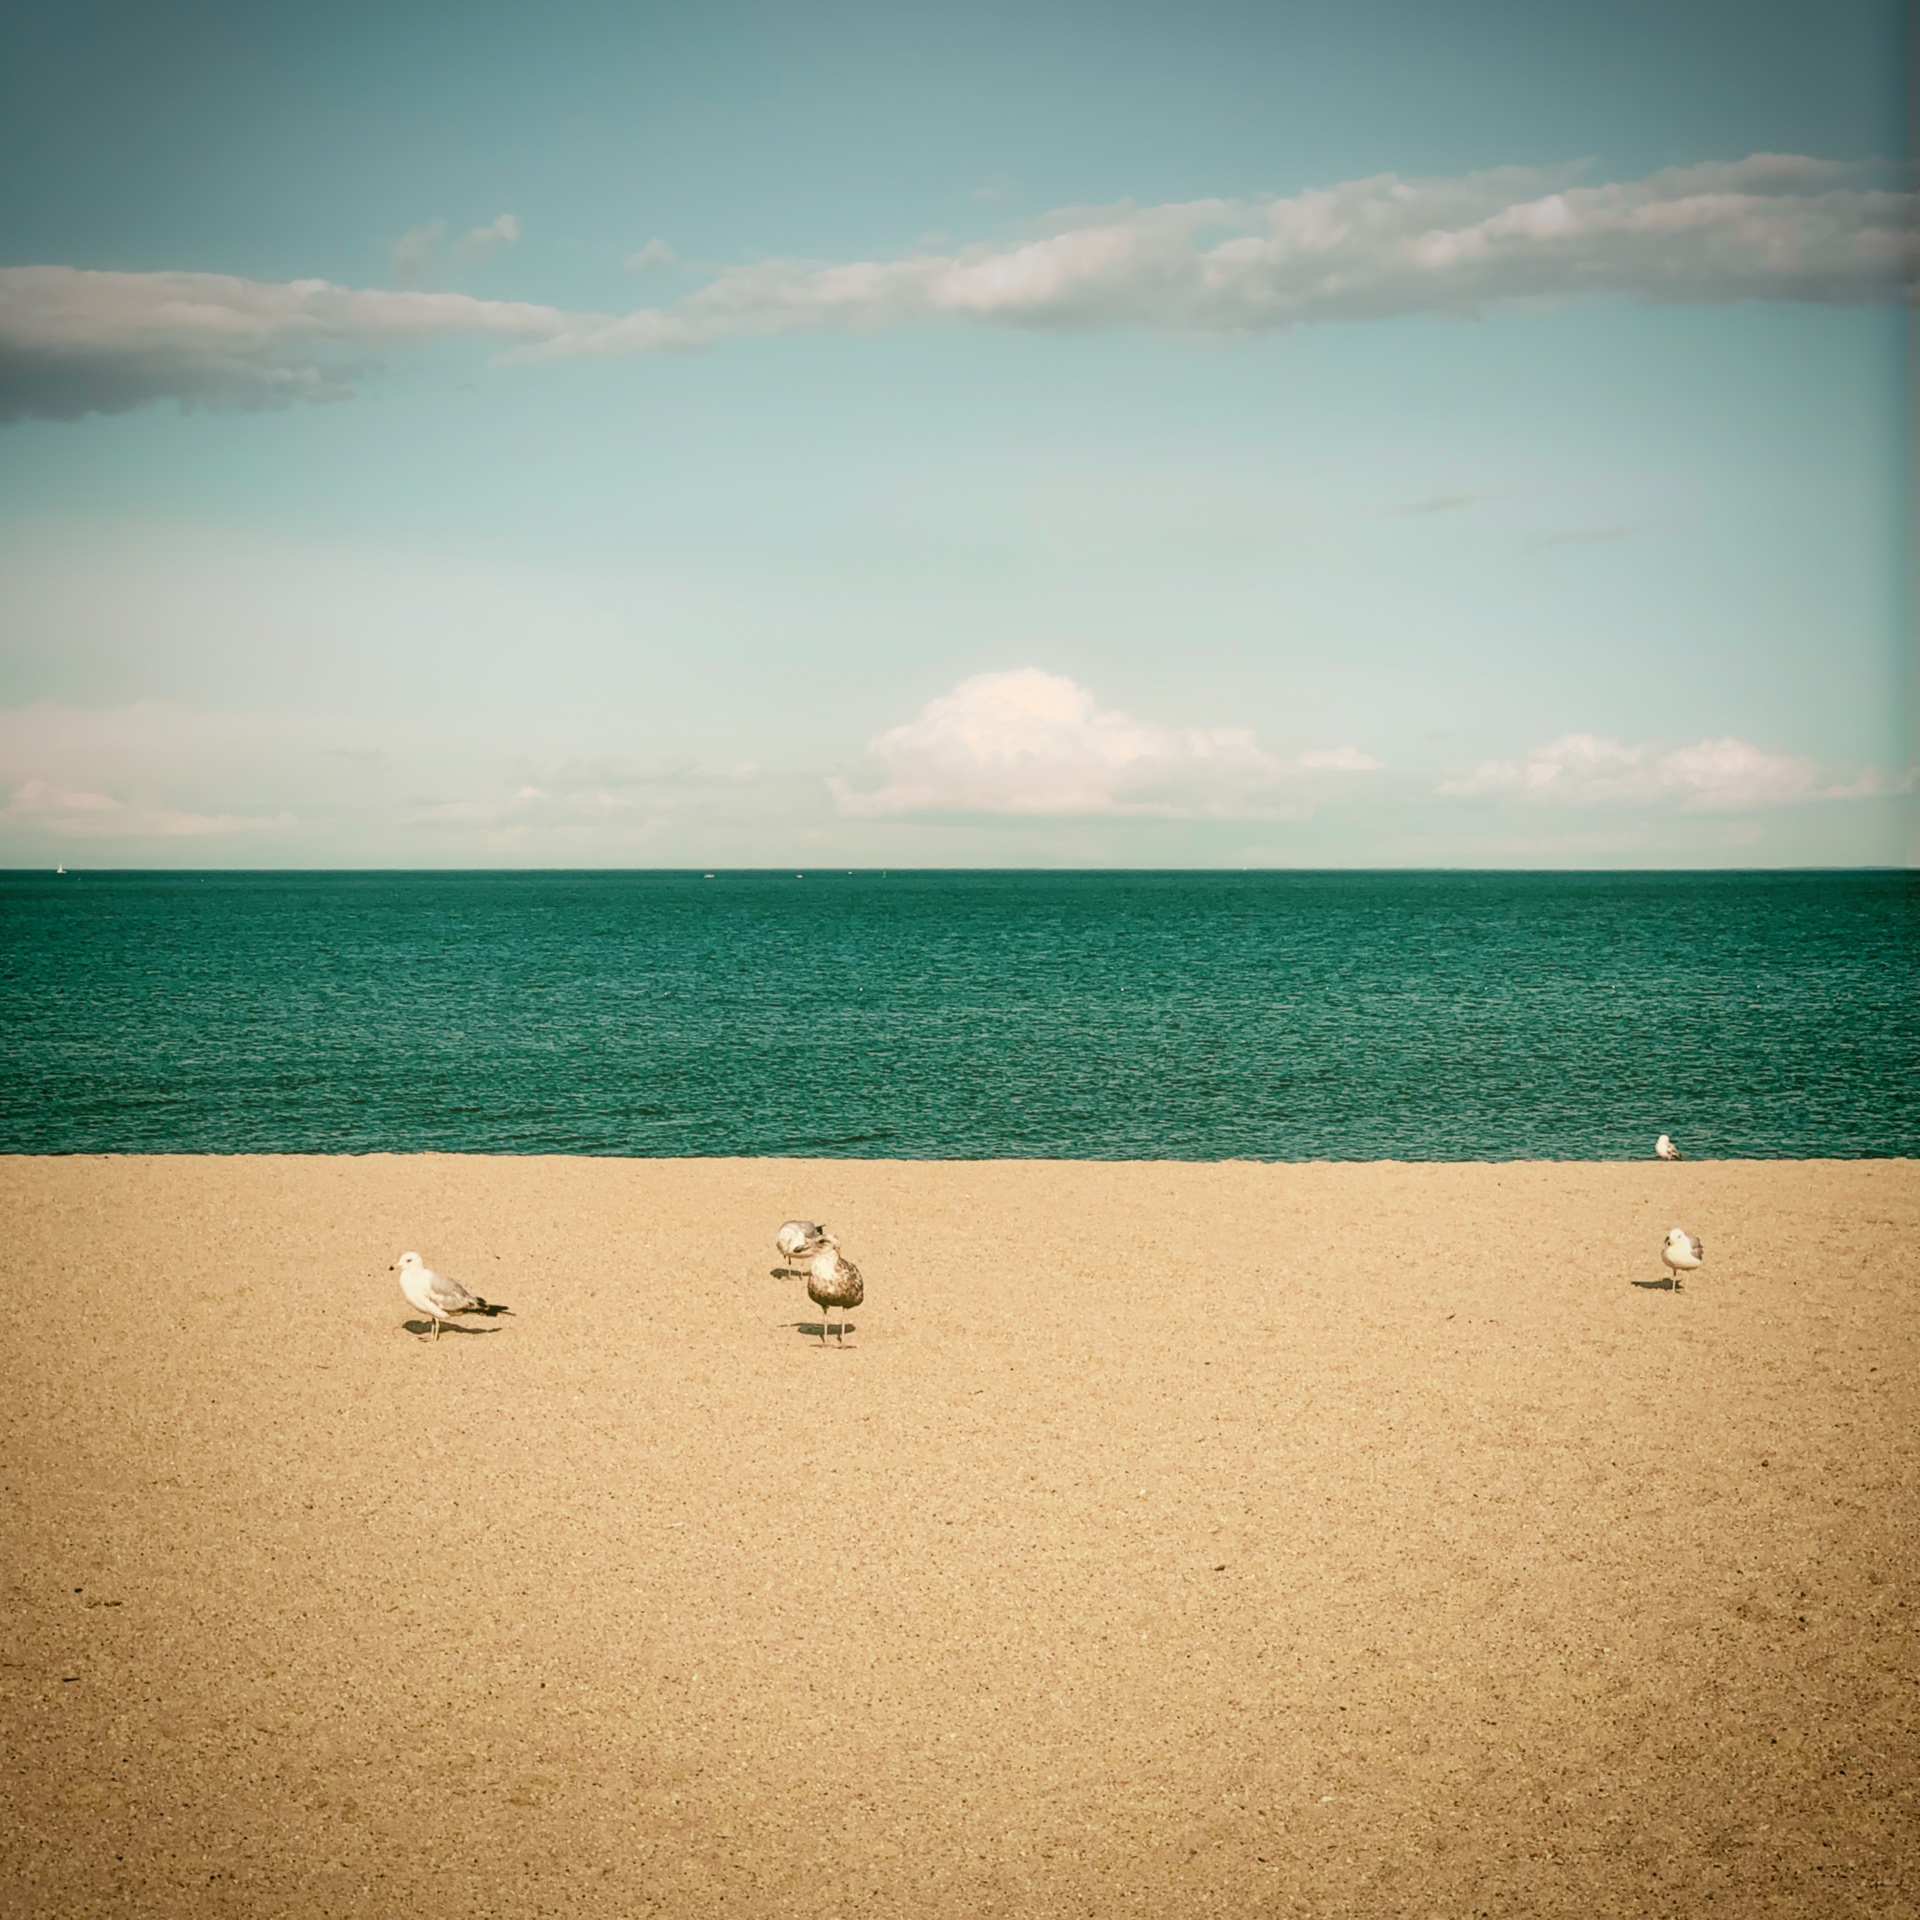 A Flock of Seagulls, Short Beach State Park, Stratford CT